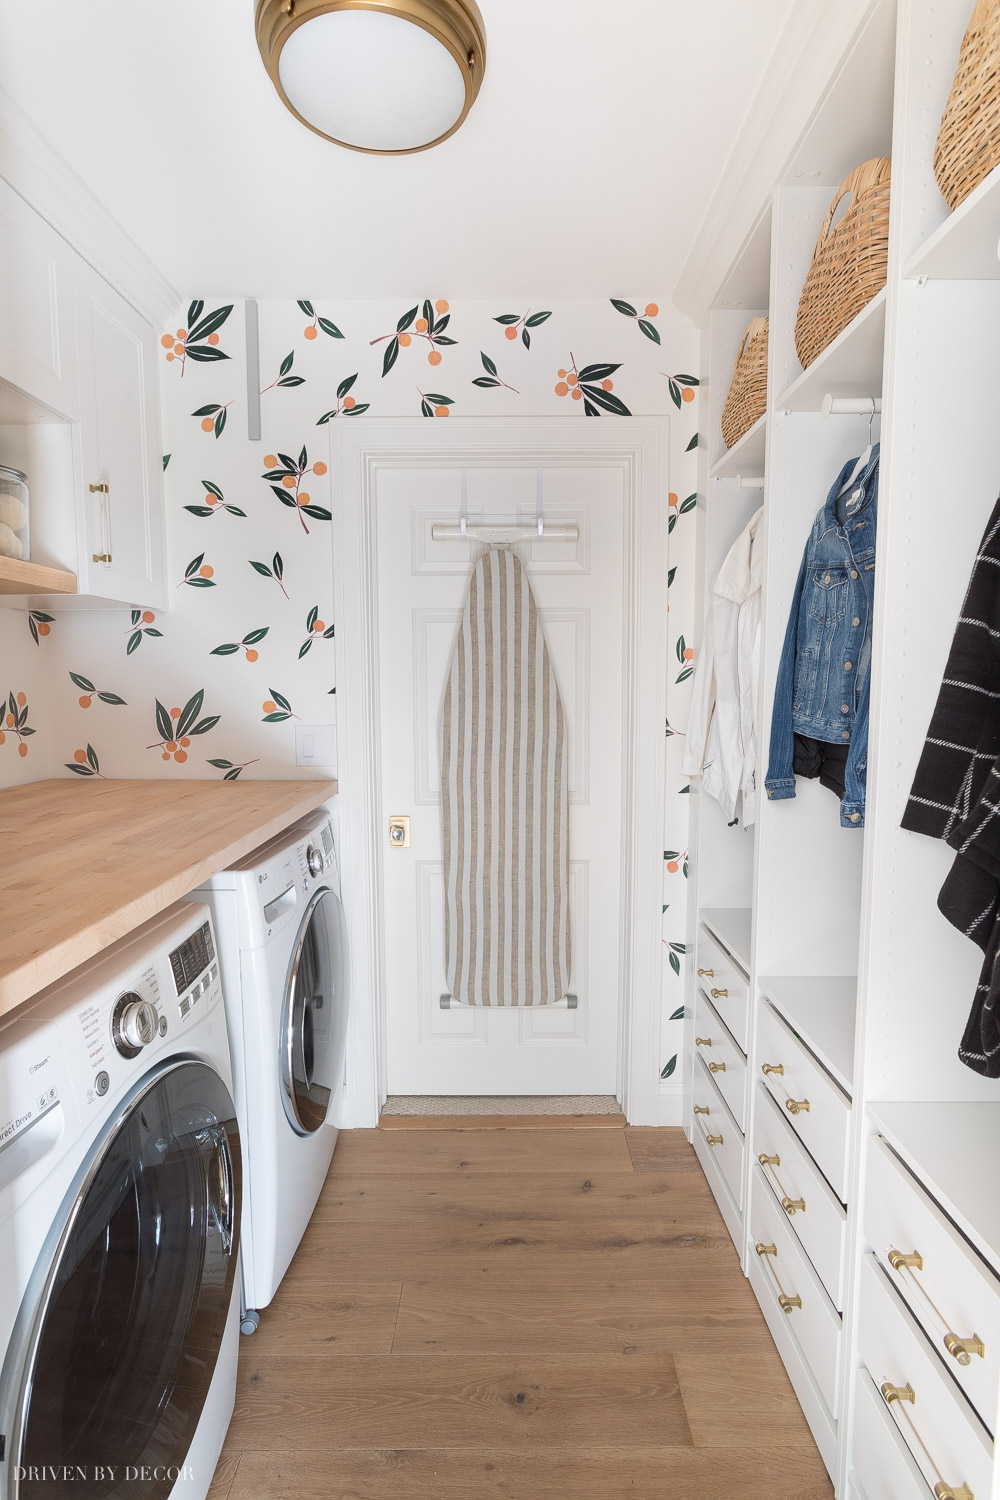 We transformed the look of our laundry room with Ikea cabinets and wardrobes!